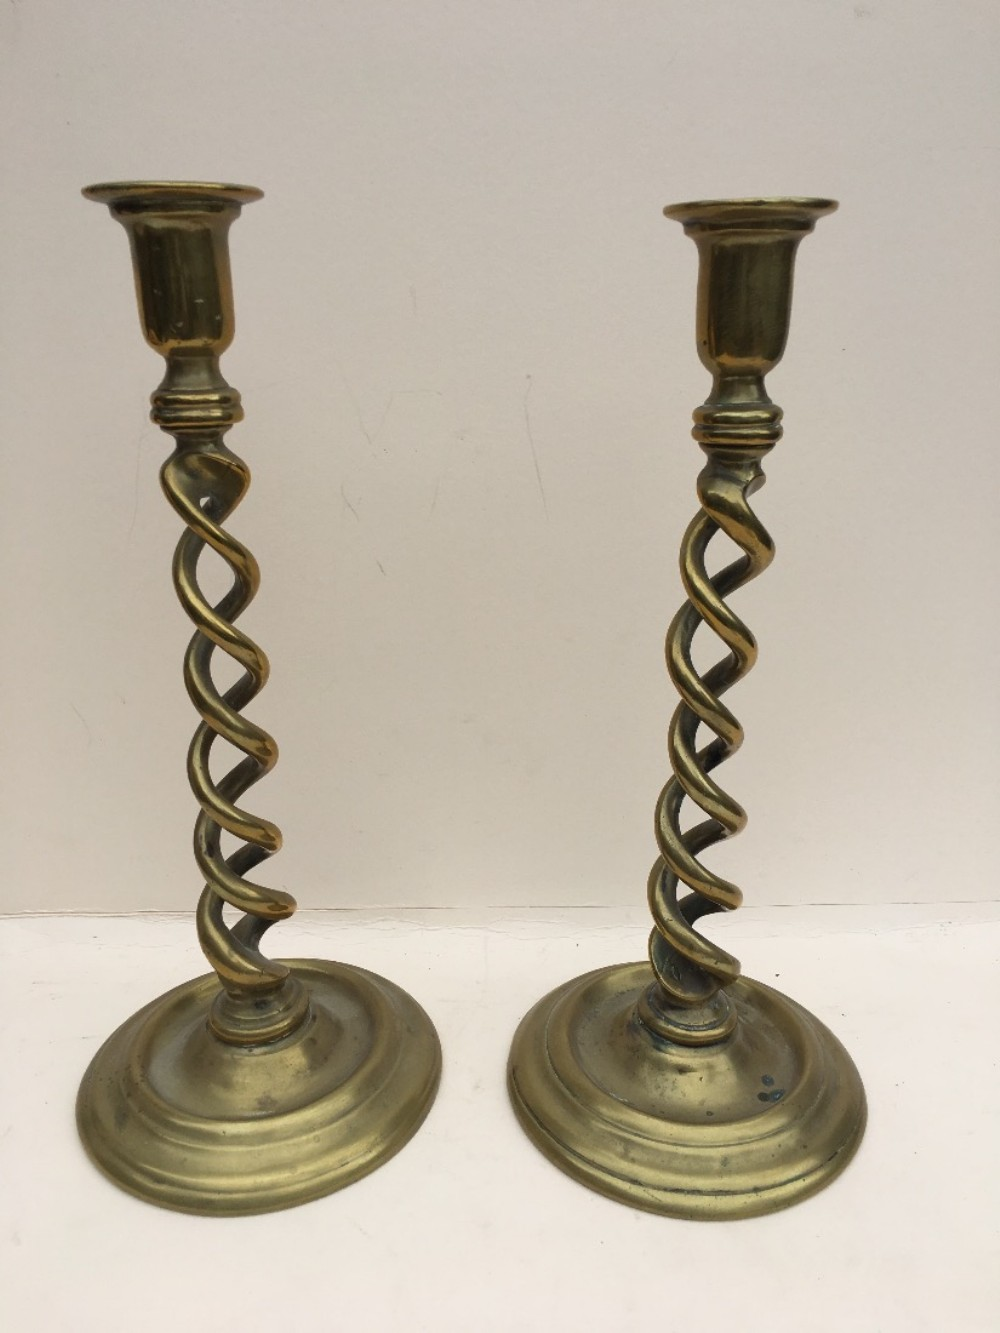 c19th tall brass double barleytwist column candlesticks